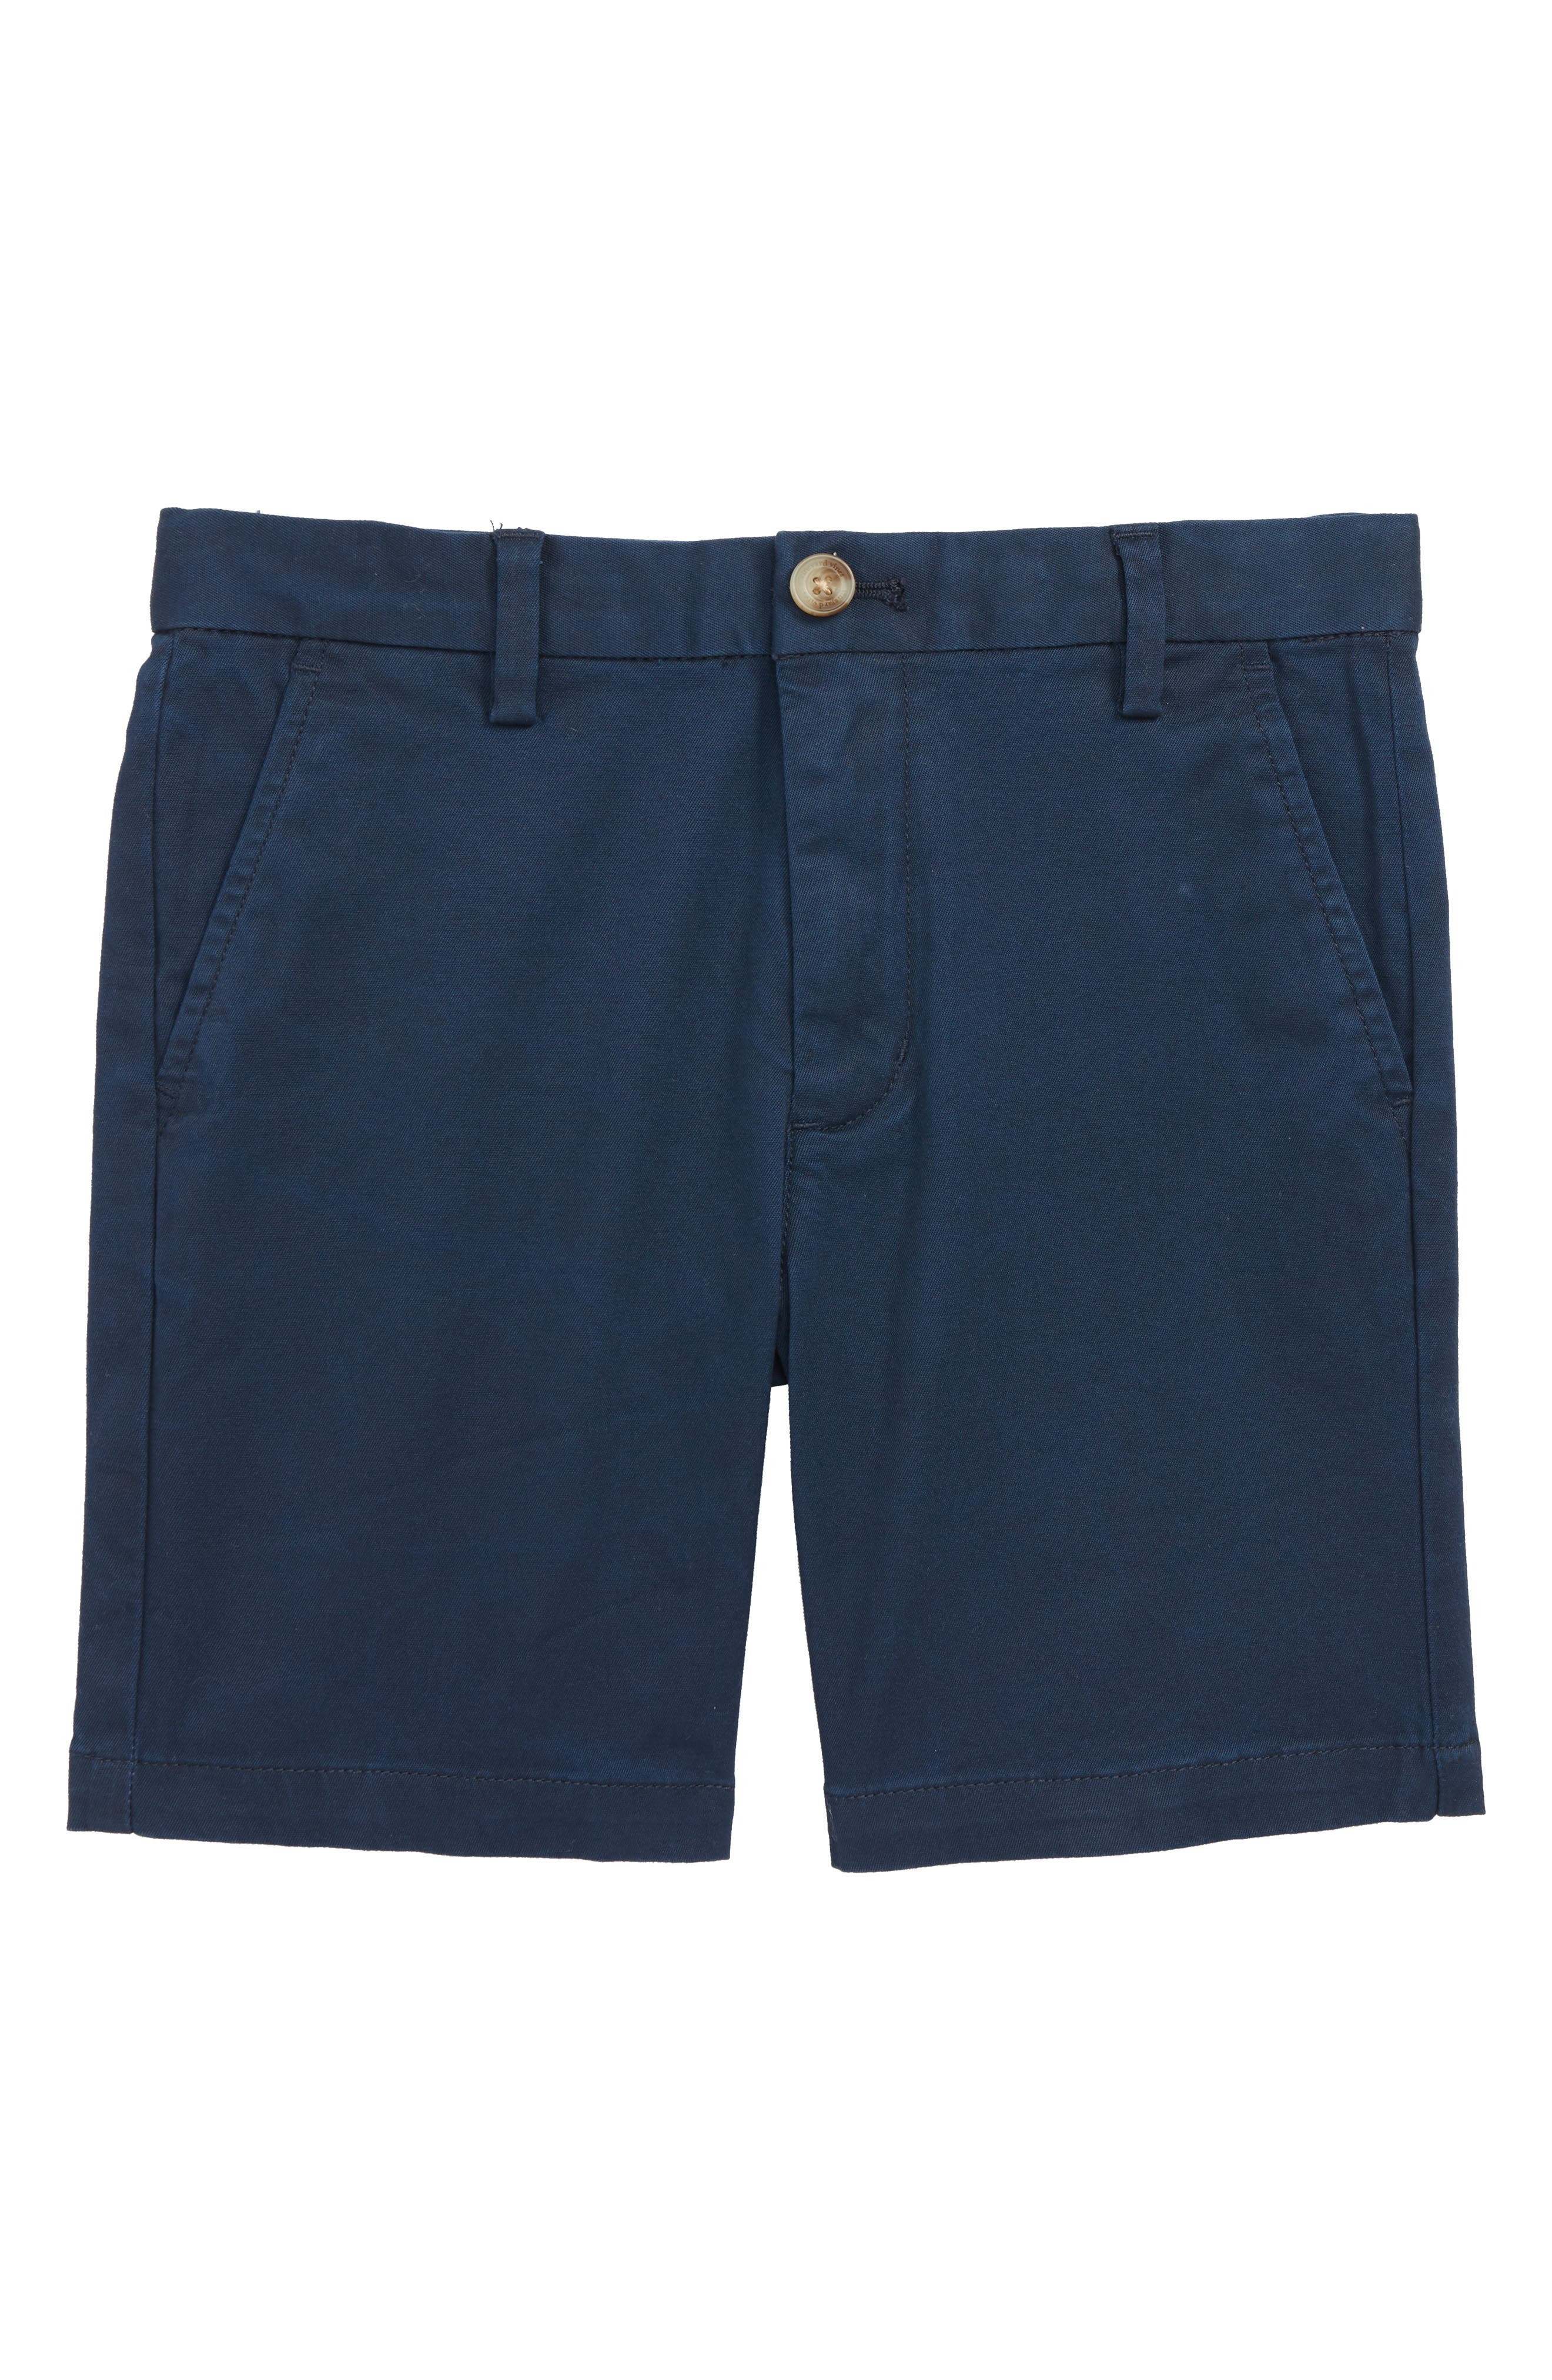 Stretch Breaker Shorts,                             Main thumbnail 1, color,                             VINEYARD NAVY